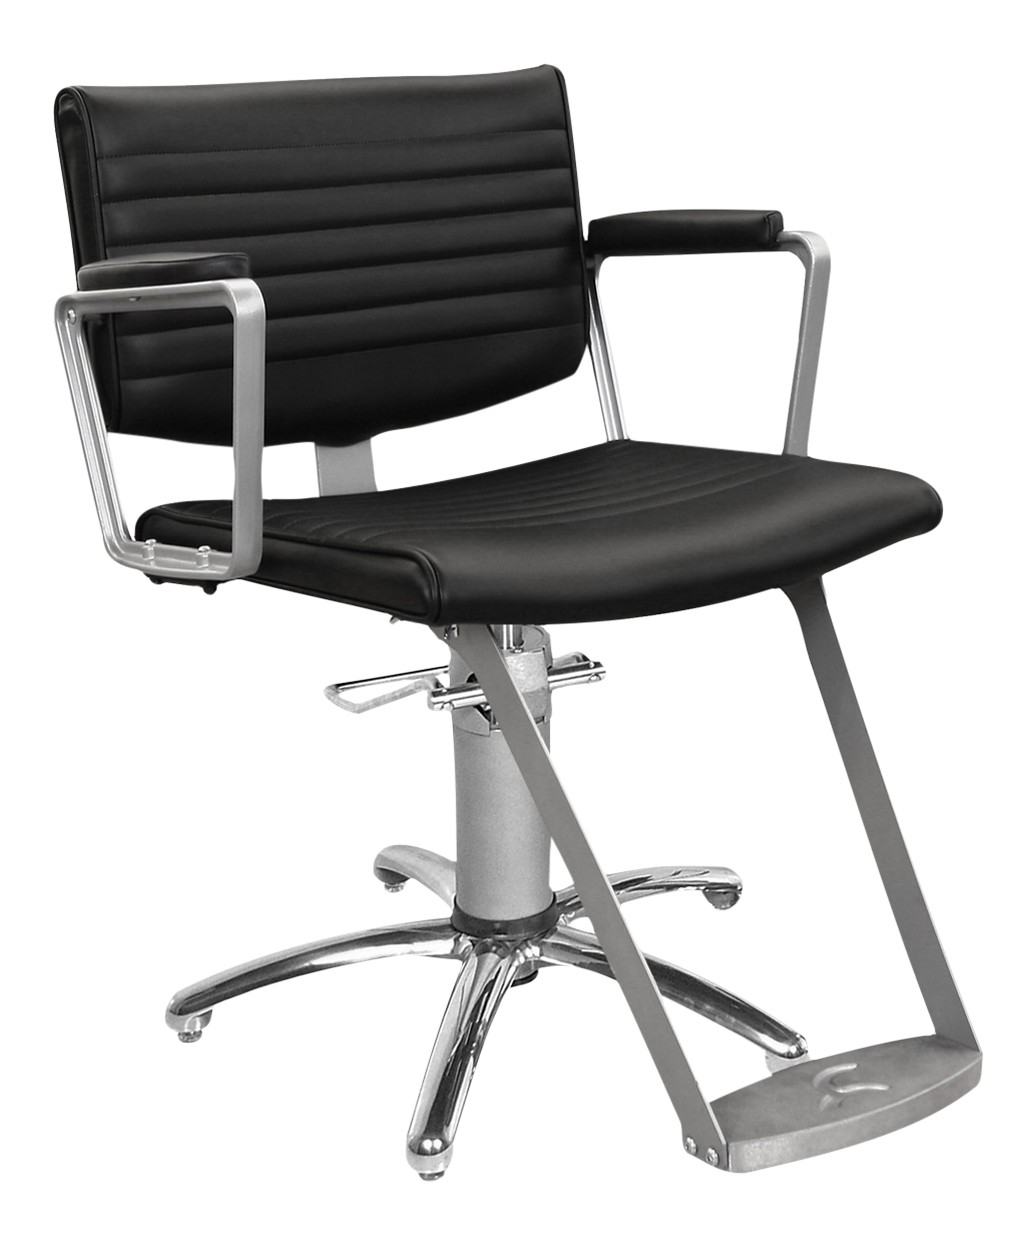 Collins 7800 Aluma Styling Chair